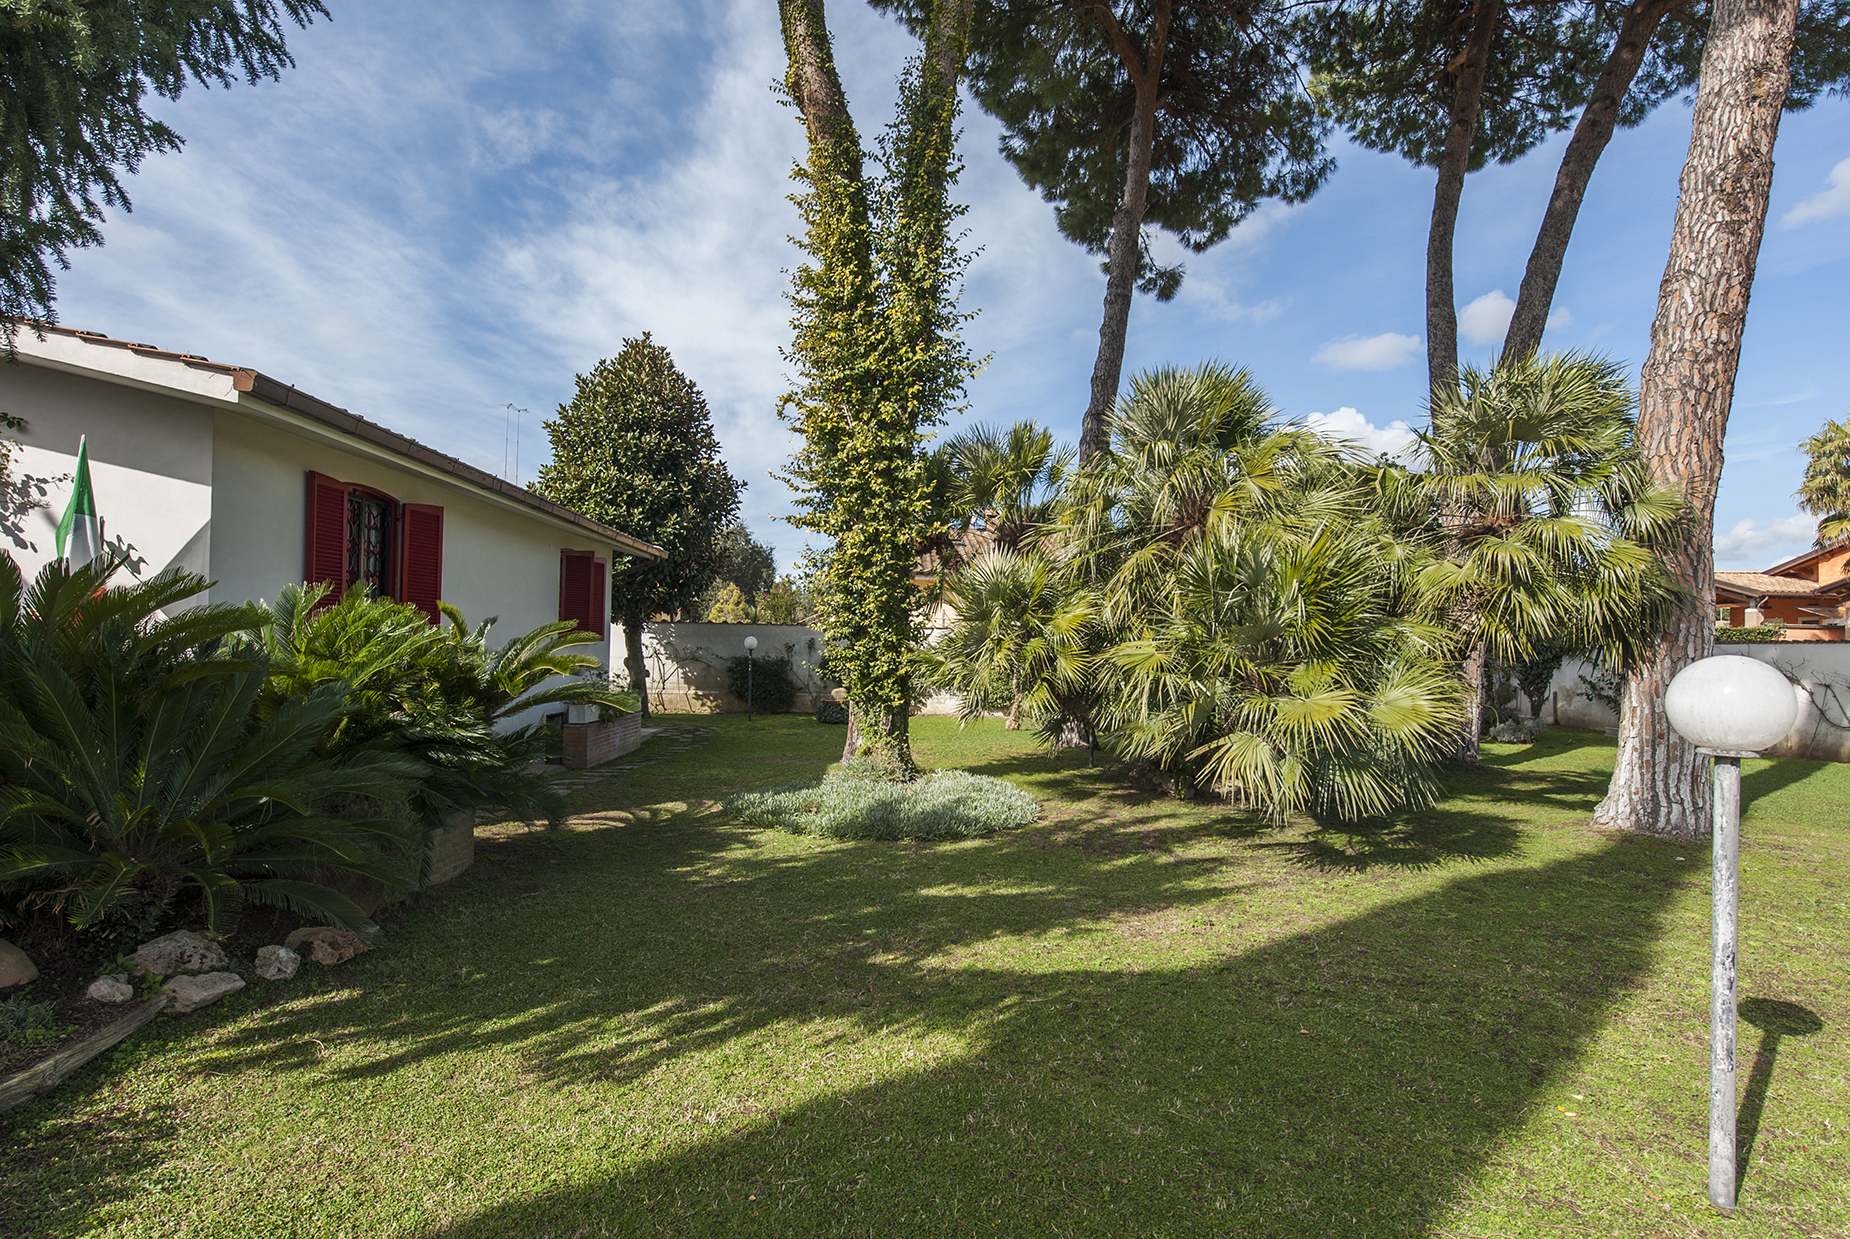 Additional photo for property listing at Villa with large garden in the Eur Infernetto neighborhood Via Fortezza Rome, Rome 00124 Italy